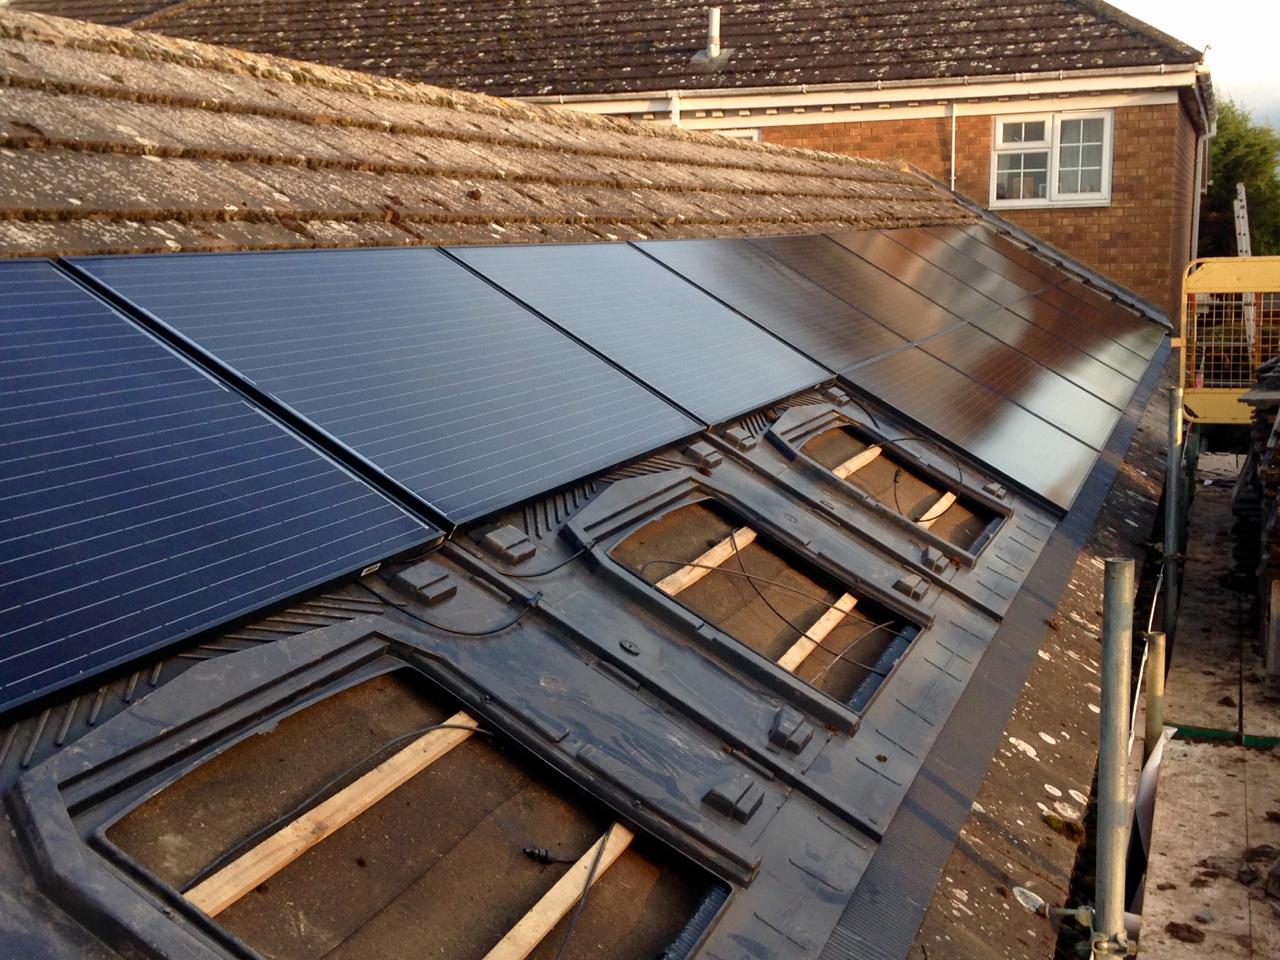 https://www.bluedotroofing.uk/wp-content/uploads/2018/01/Solar-panels-13.jpg